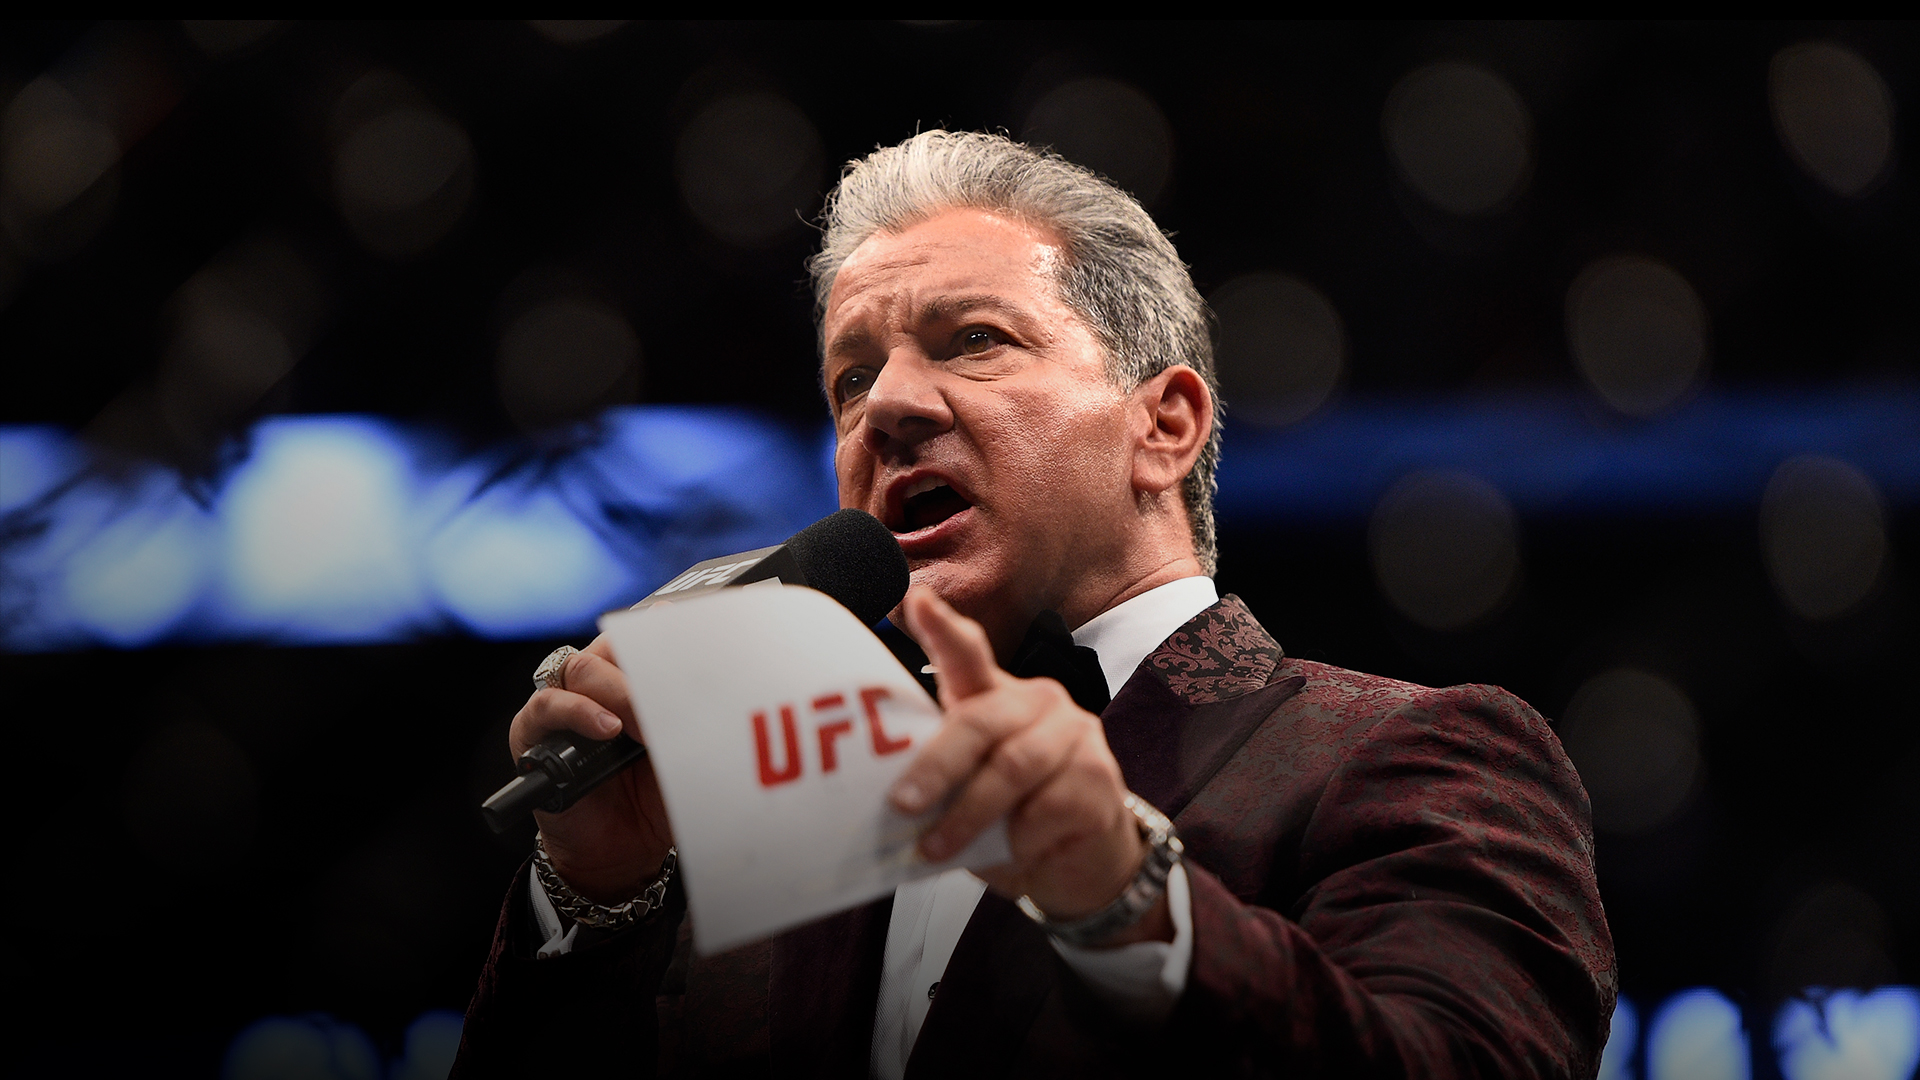 UFC Octagon Announcer Bruce Buffer introduces Glover Teixeira of Brazil before facing Anthony Johnson in their light heavyweight bout during the UFC 202 event at T-Mobile Arena on August 20, 2016 in Las Vegas, Nevada. (Photo by Jeff Bottari/Zuffa LLC)